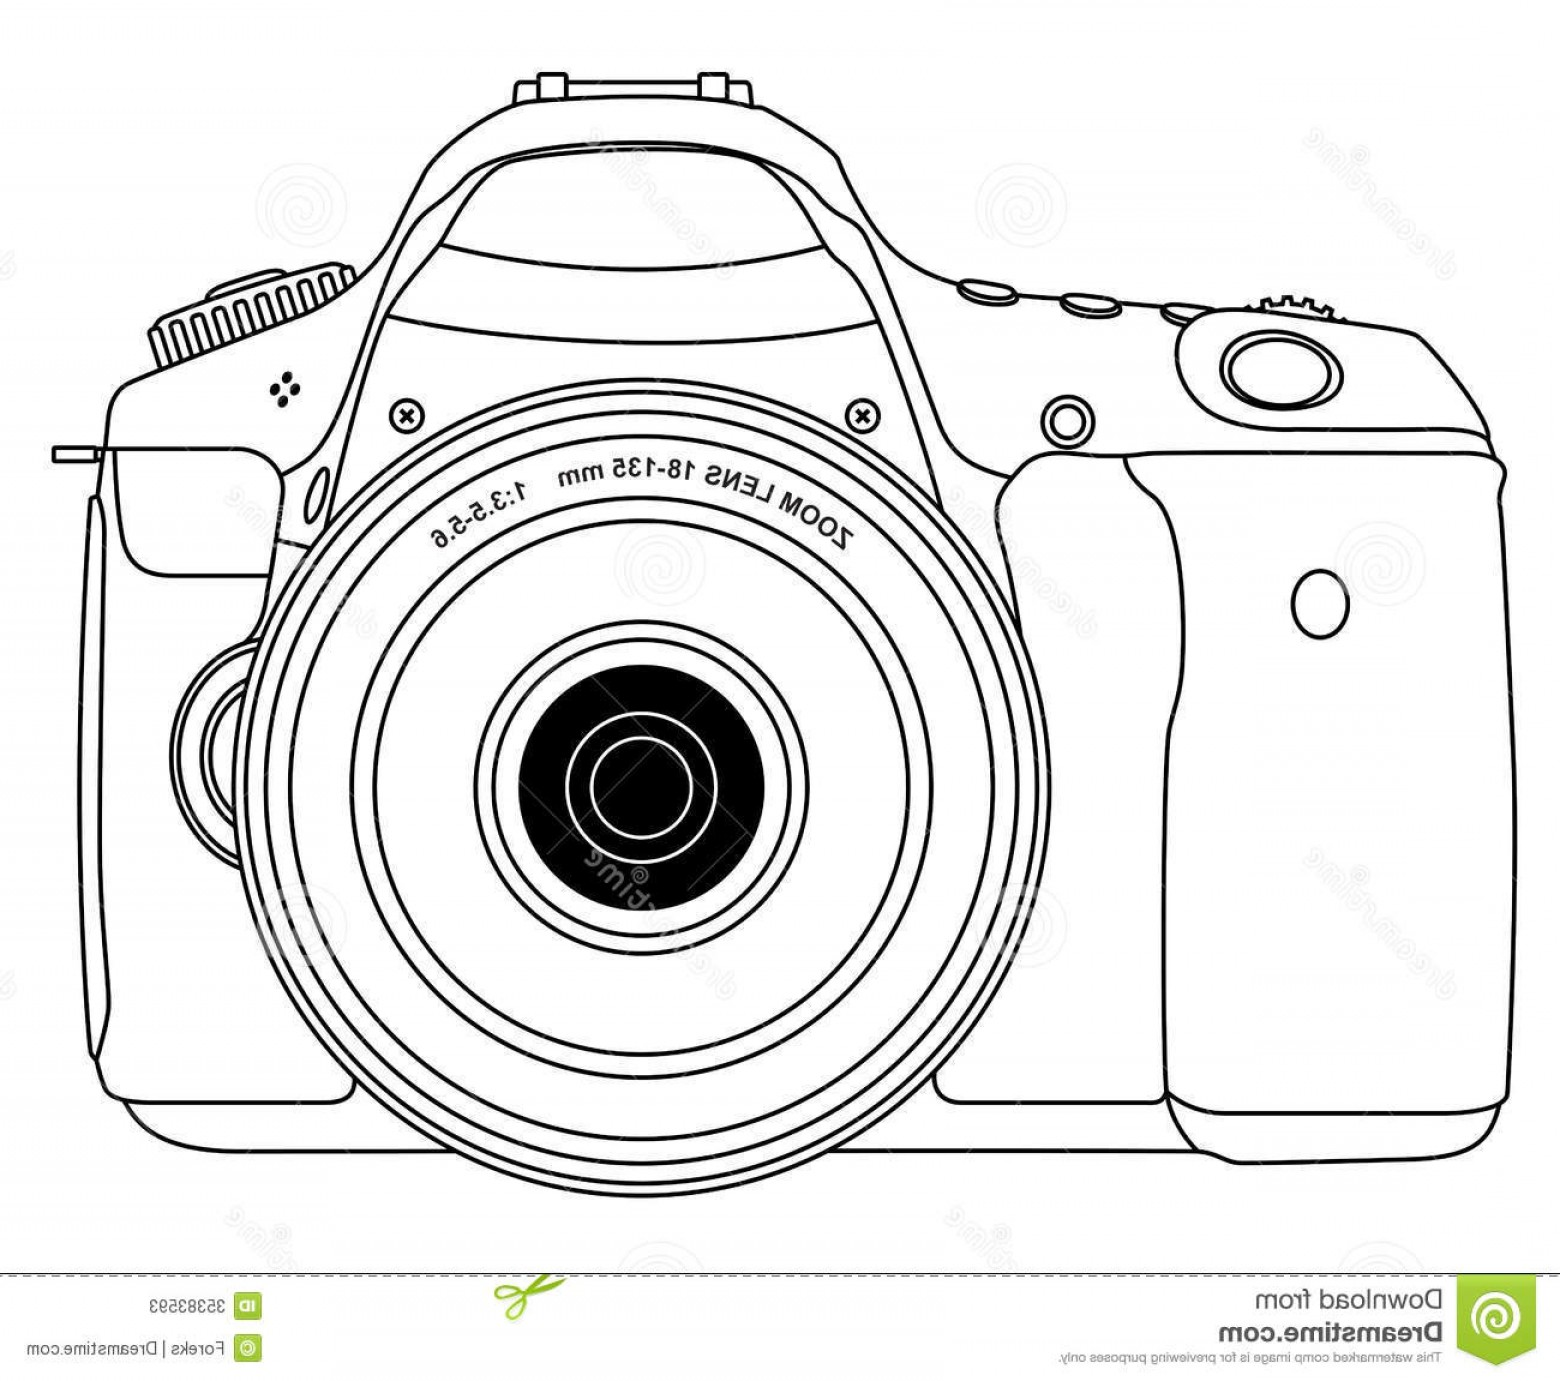 Camera Outline Vector Graphic: Stock Photos Photo Camera Outline View Isolated Image